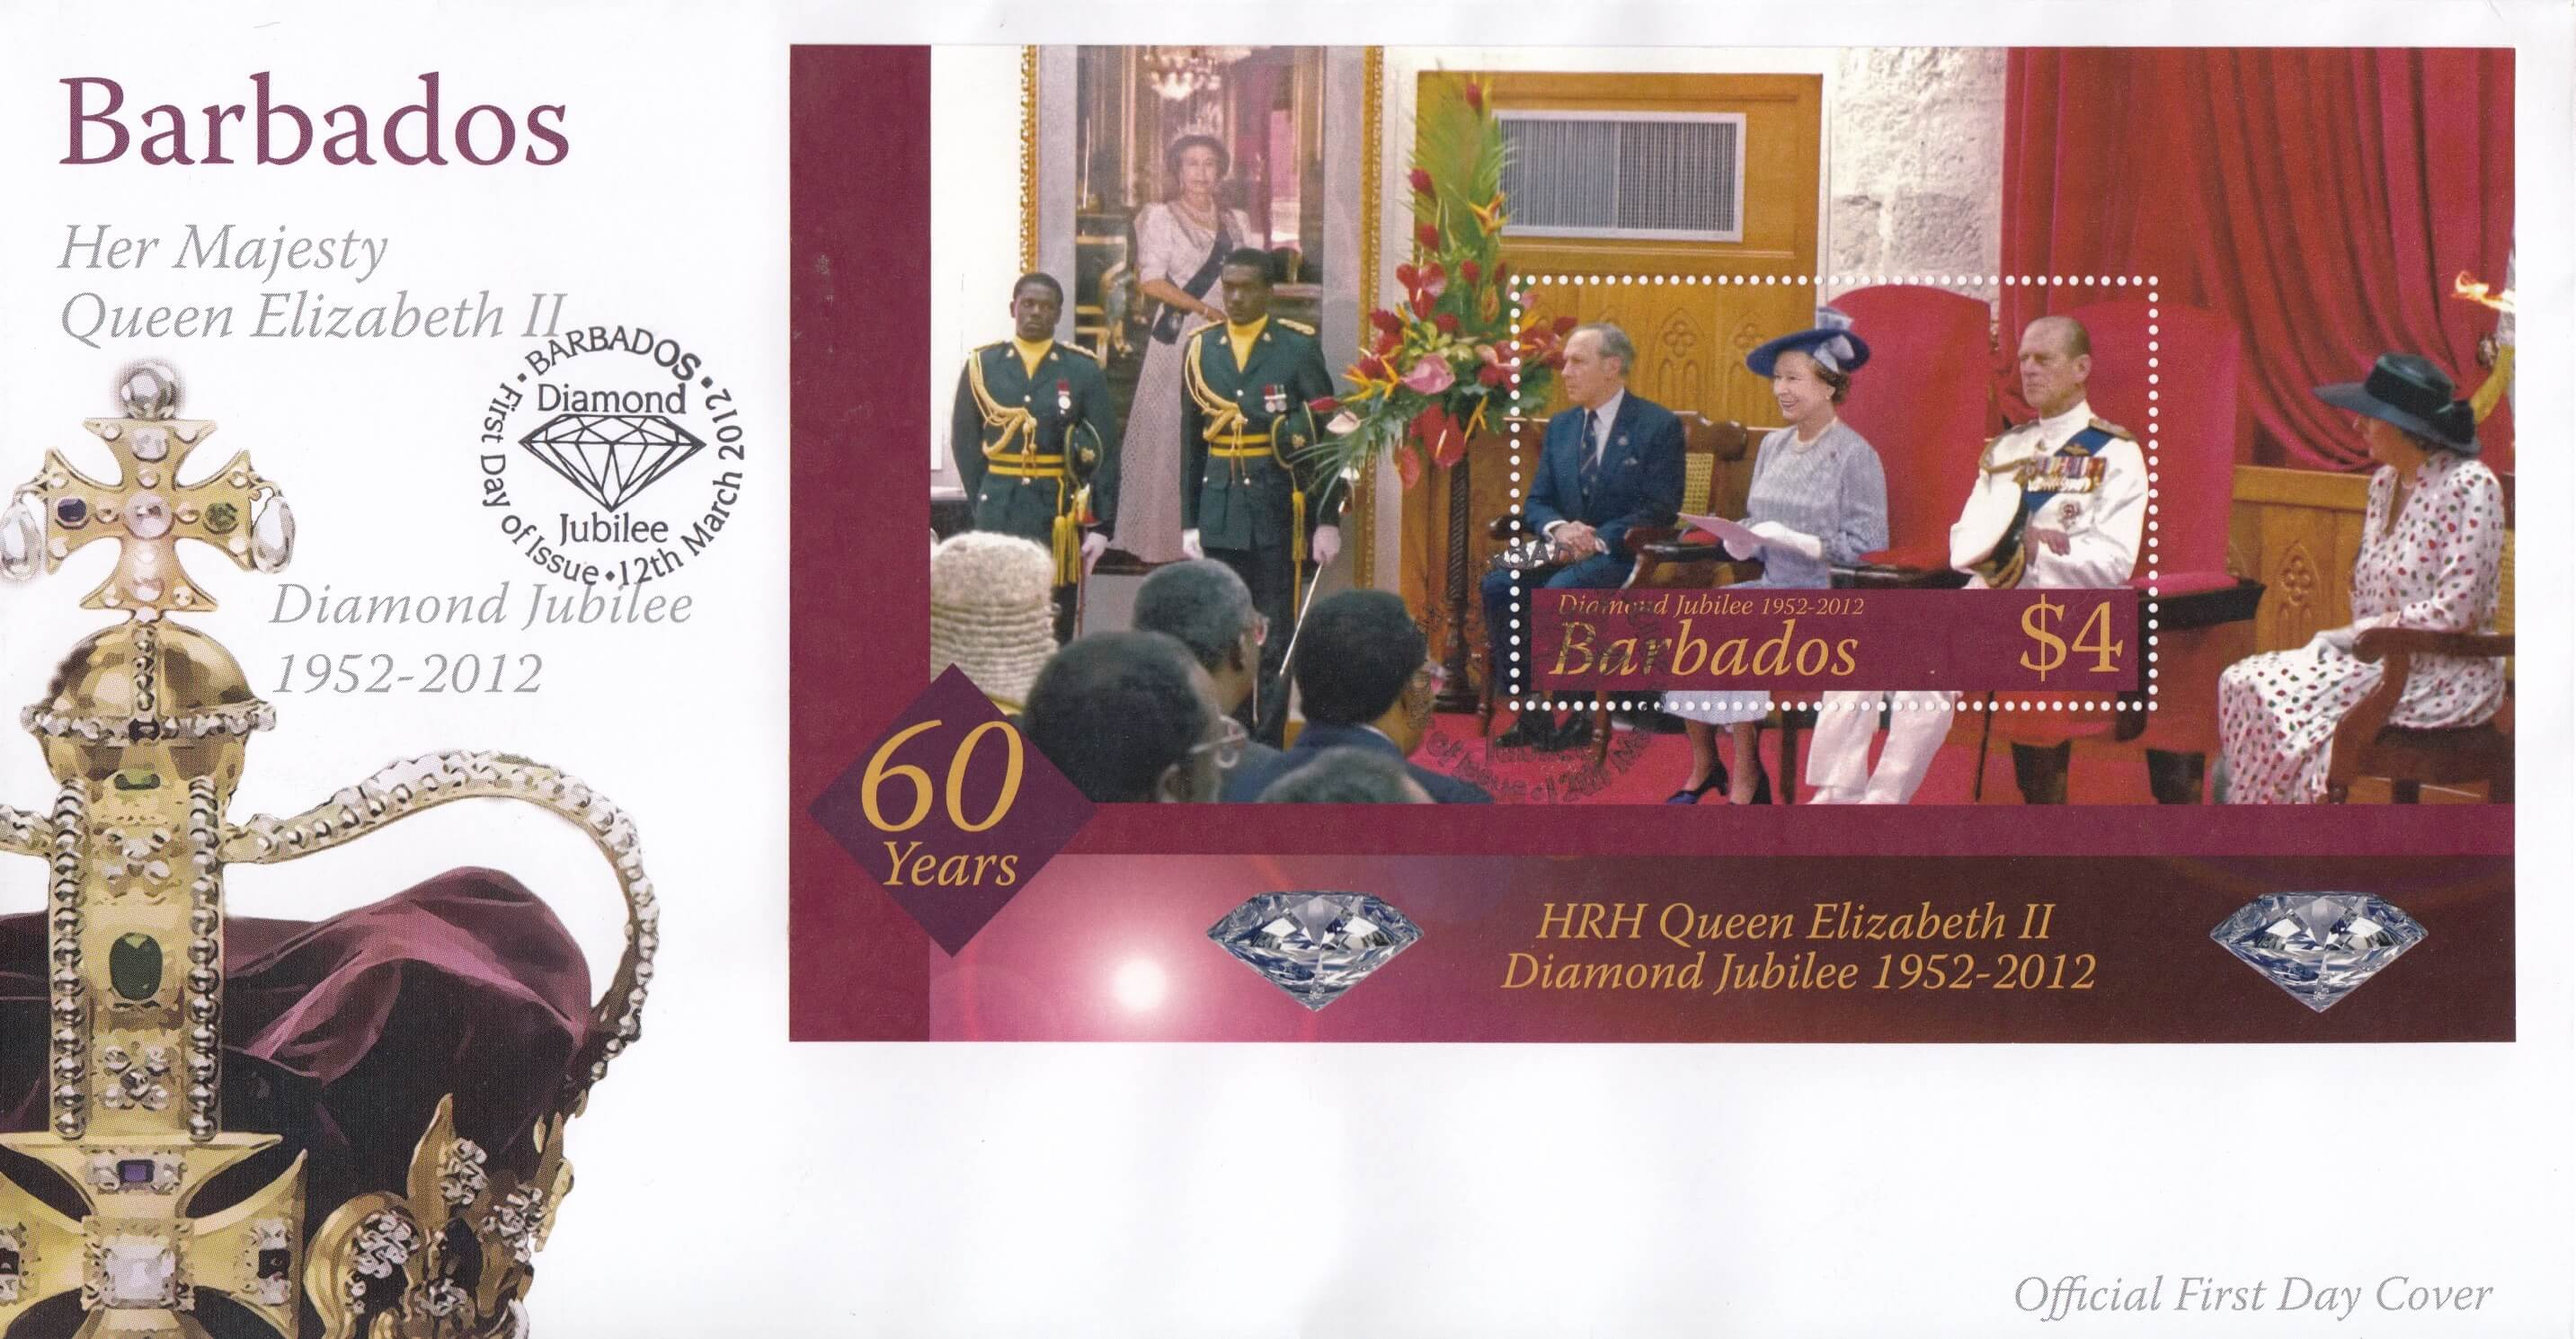 Barbados 2012 HRH Queen Elizabeth II Diamond Jubilee Mini Sheet FDC